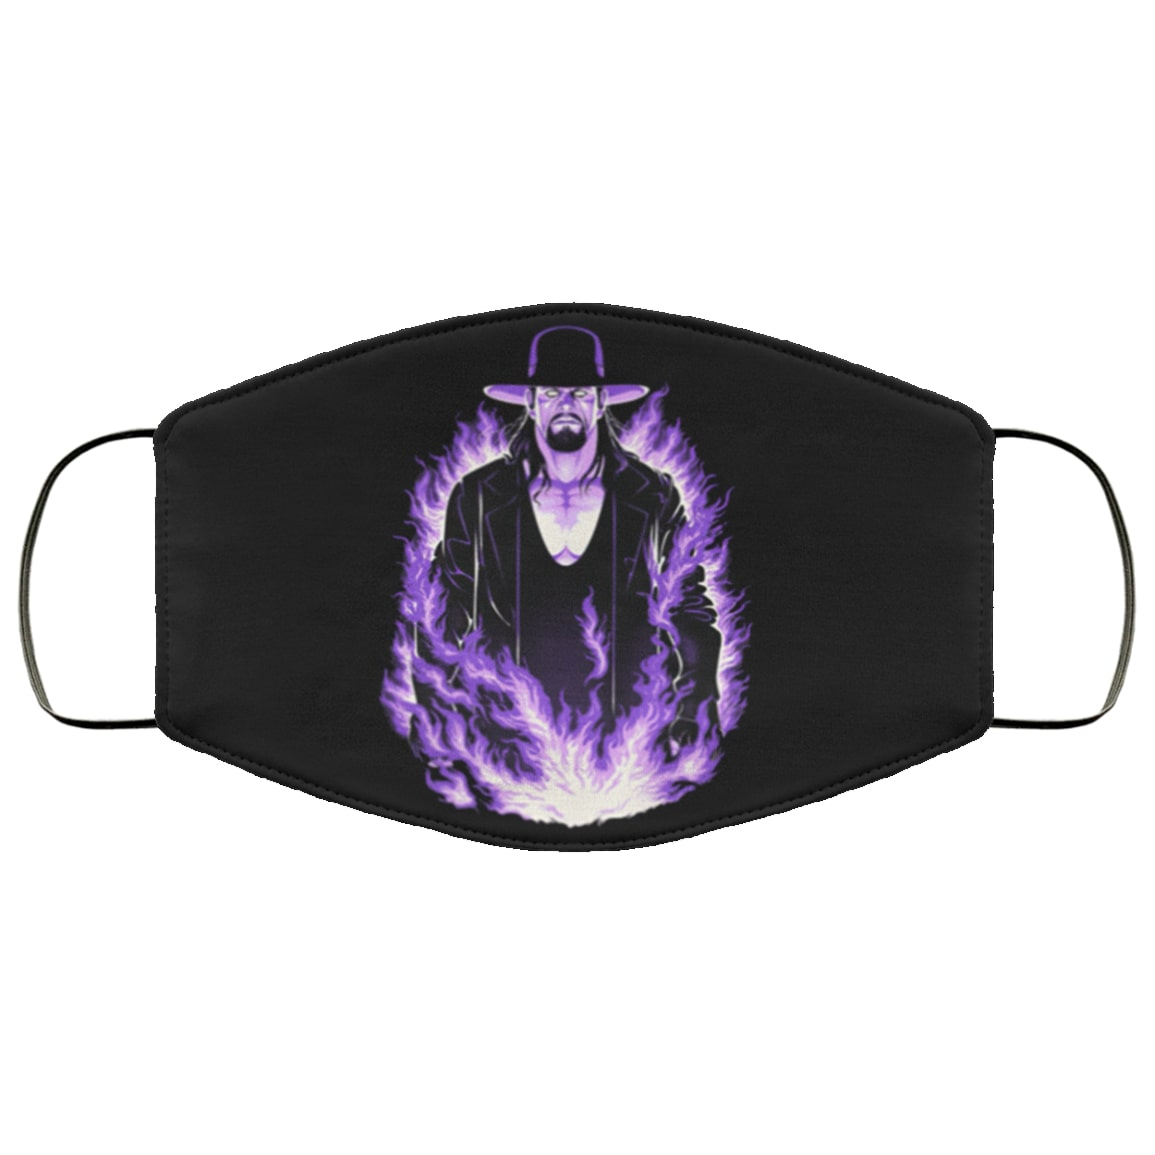 WWE the undertaker anti pollution face mask 1